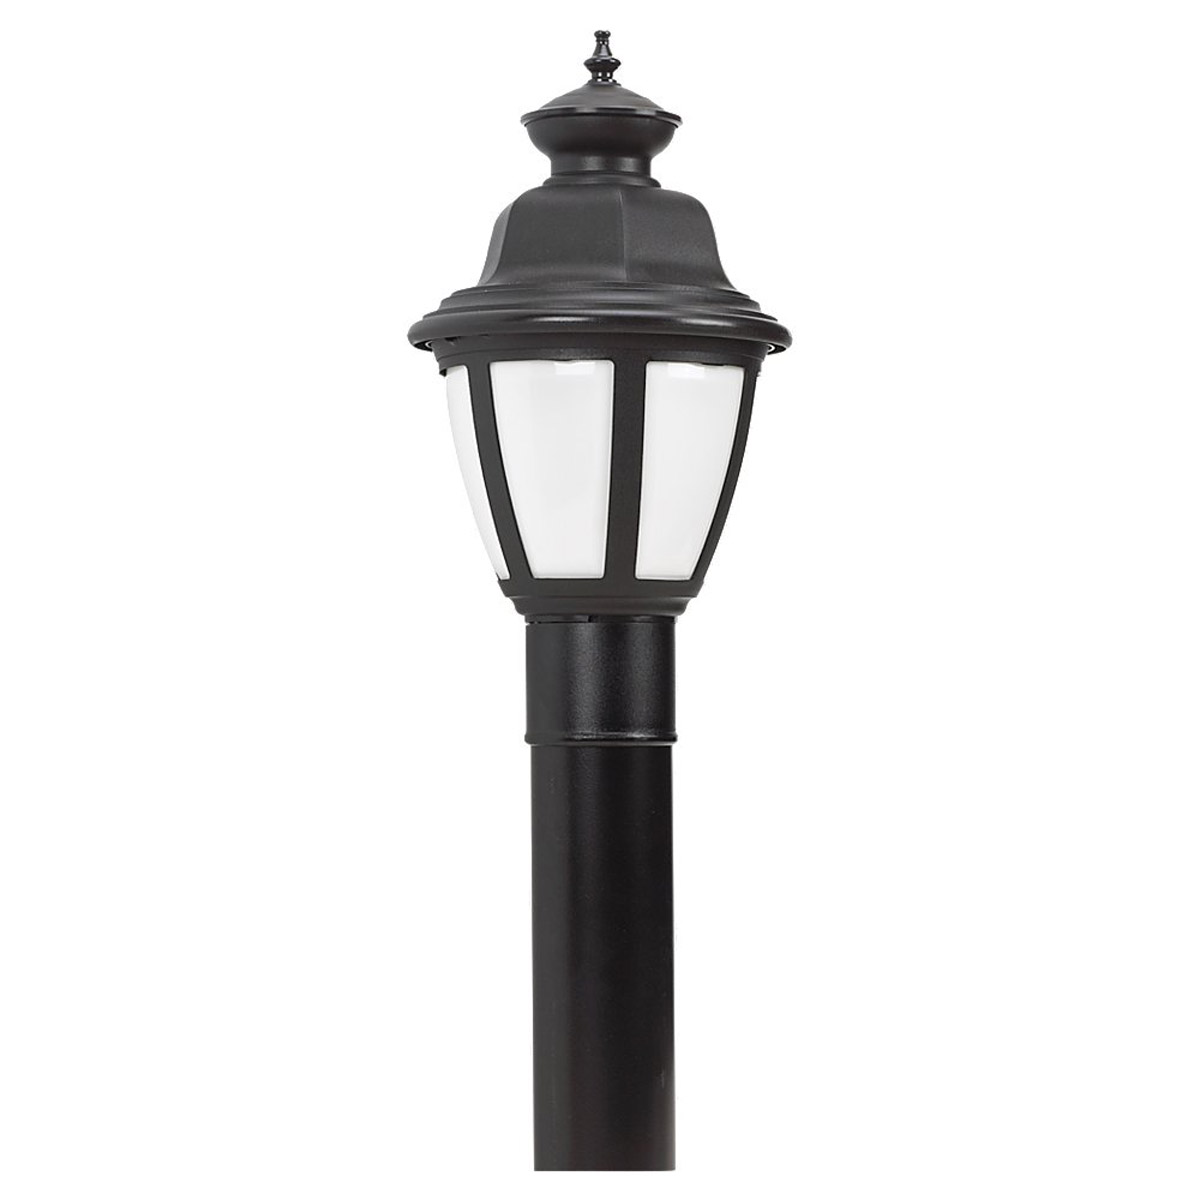 Sea Gull Lighting Belmar 1 Light Post Lantern in Black 82390BL-12 photo